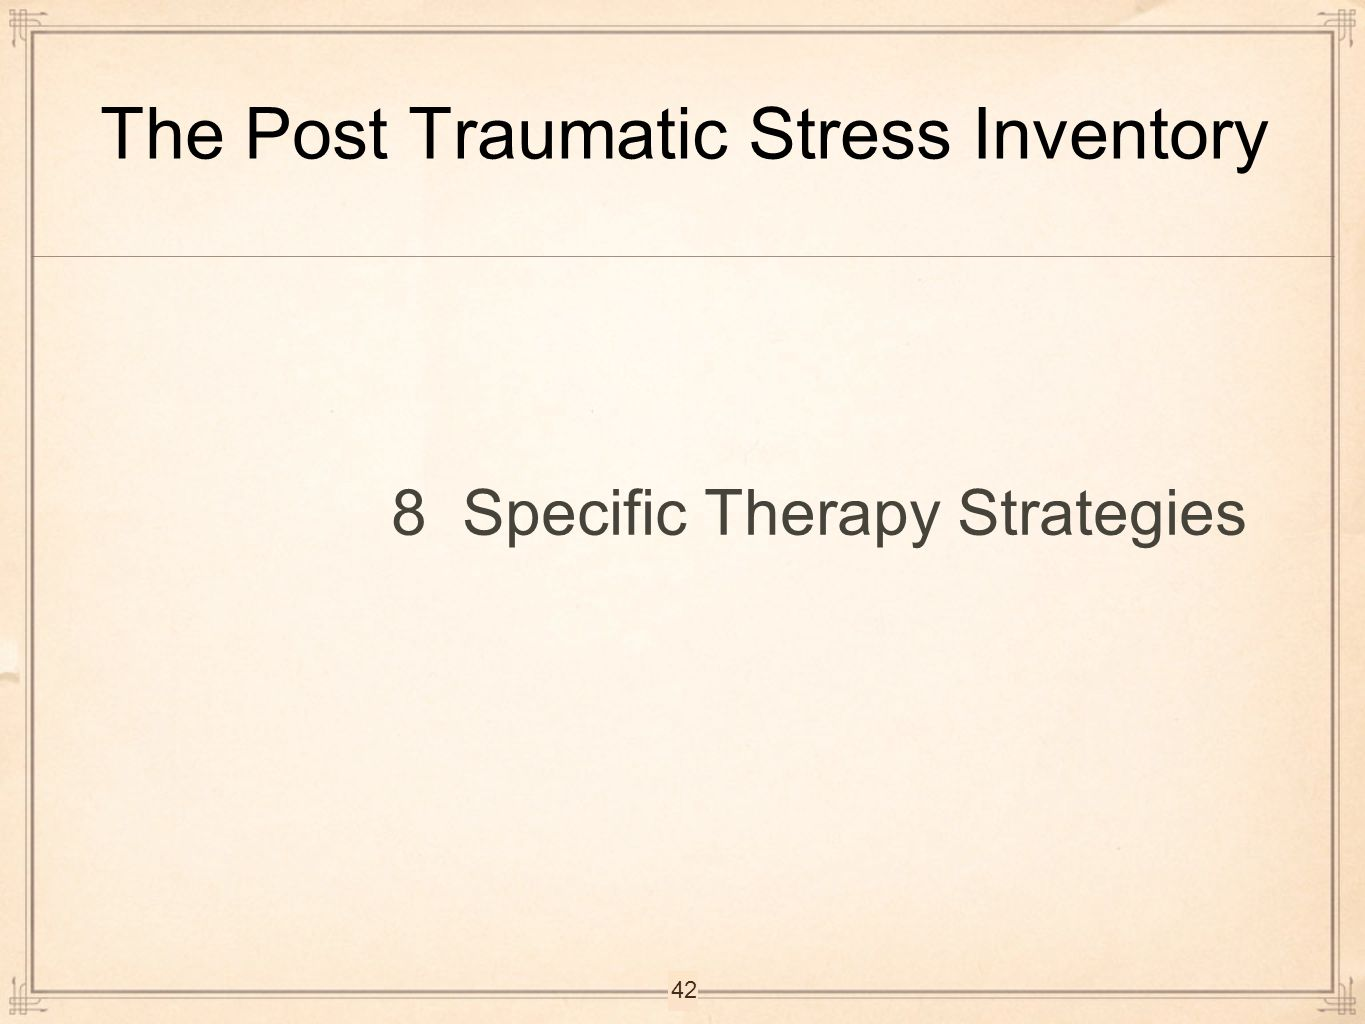 The Post Traumatic Stress Inventory